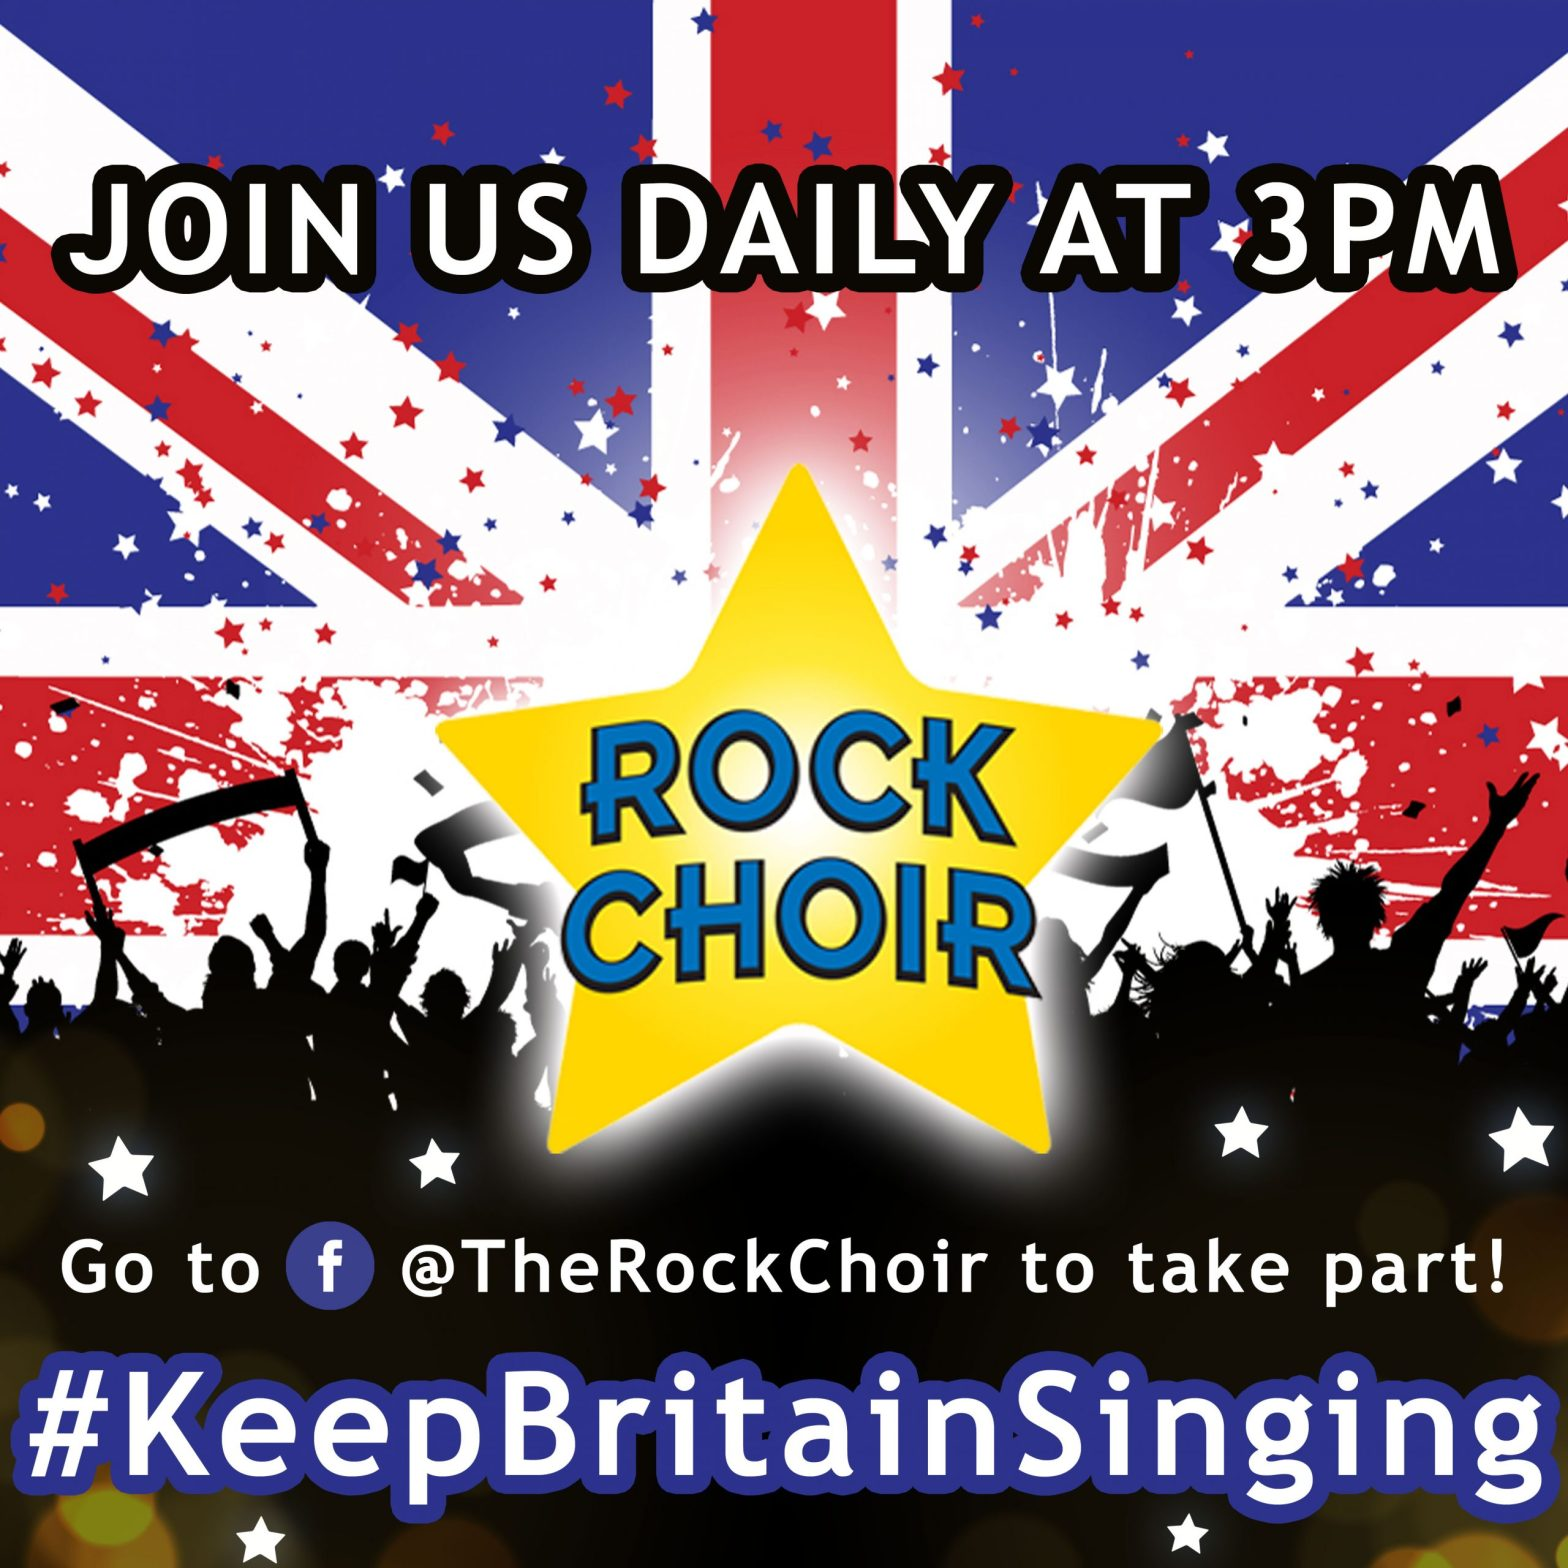 #KeepBritainSinging